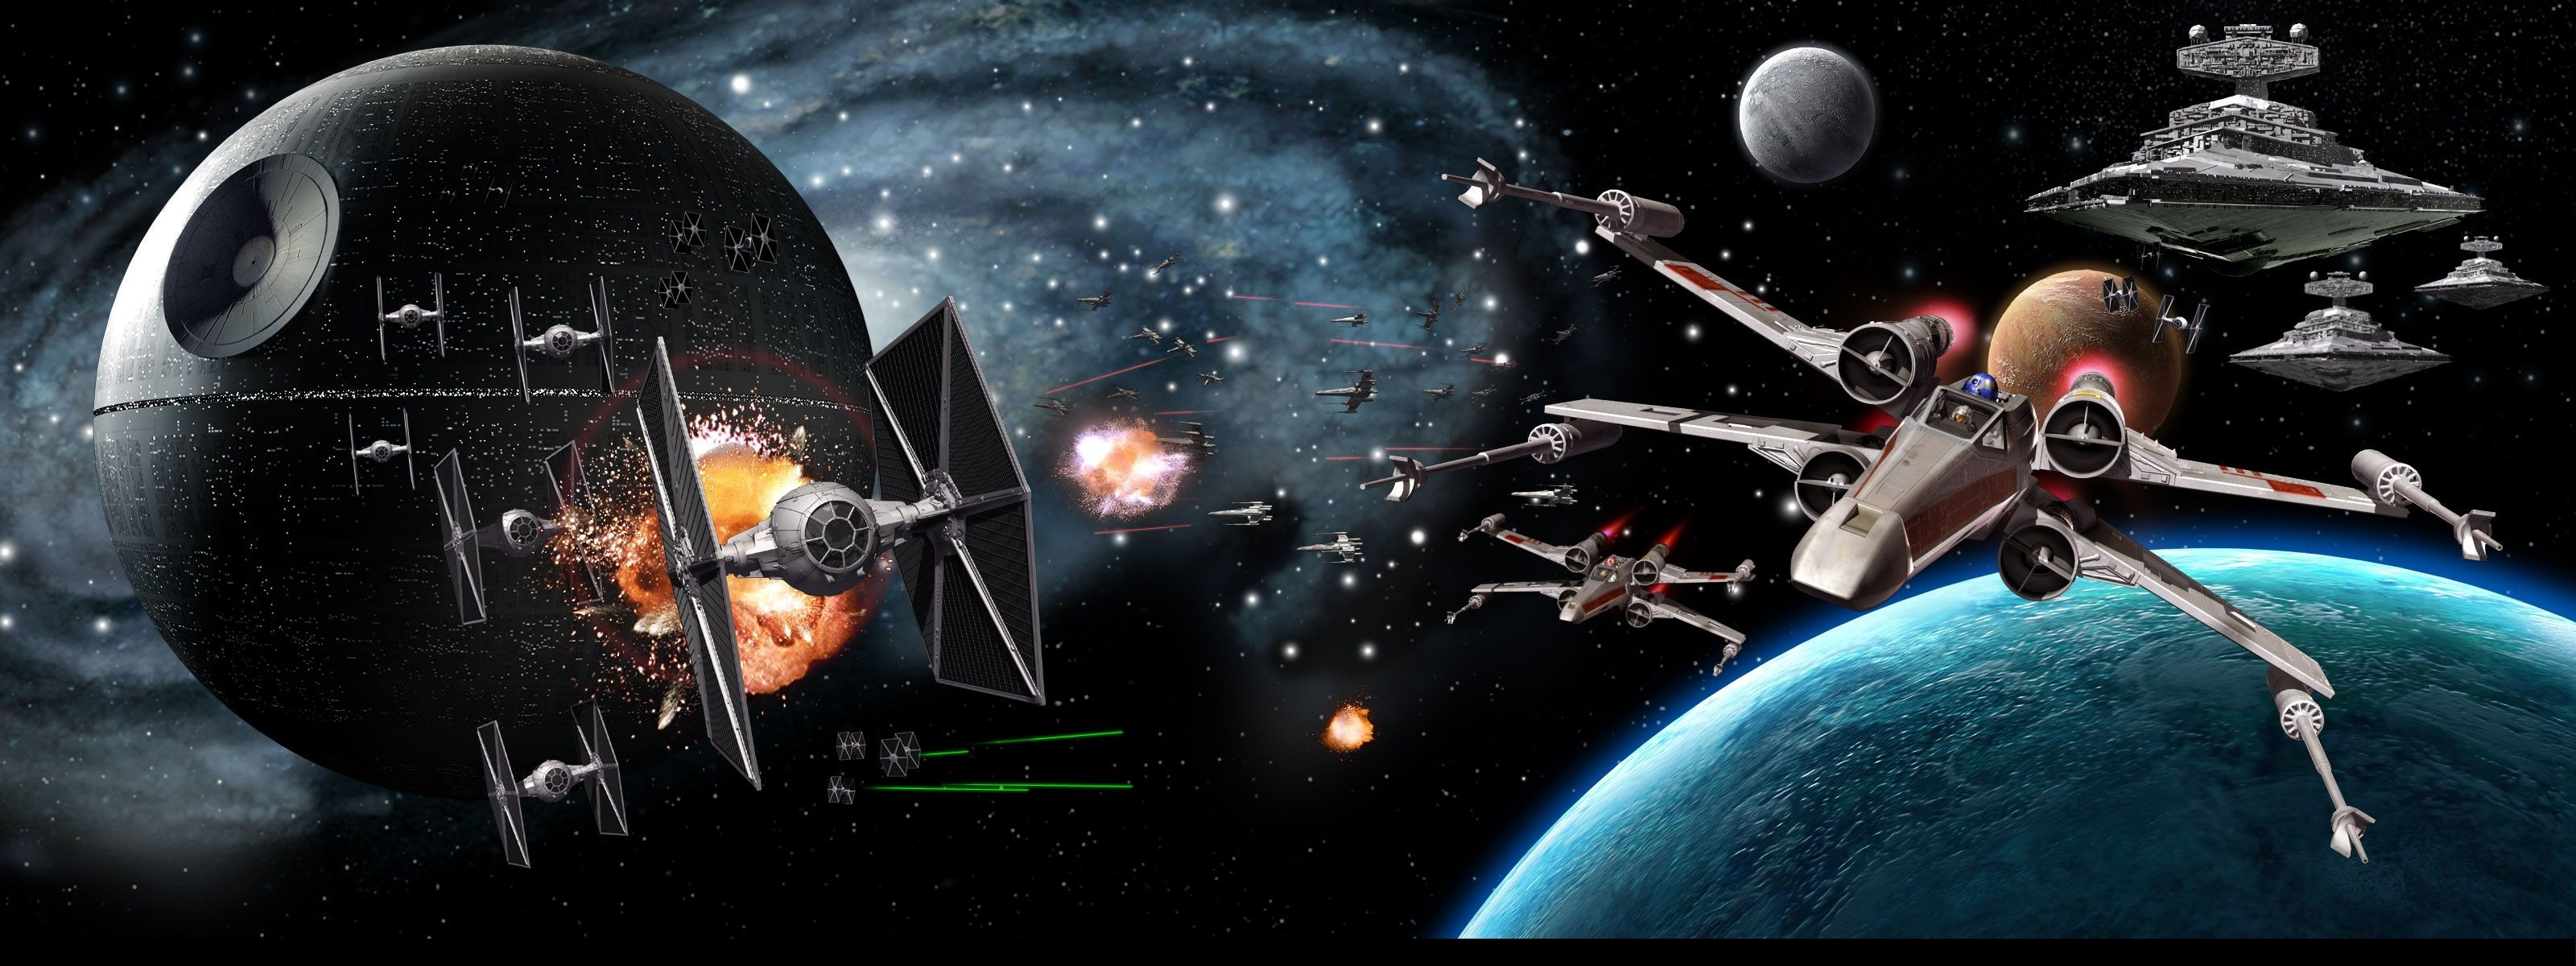 Triple Monitor Star Wars Png - Triple Monitor Star Wars Wallpaper (30 + Background Pictures)